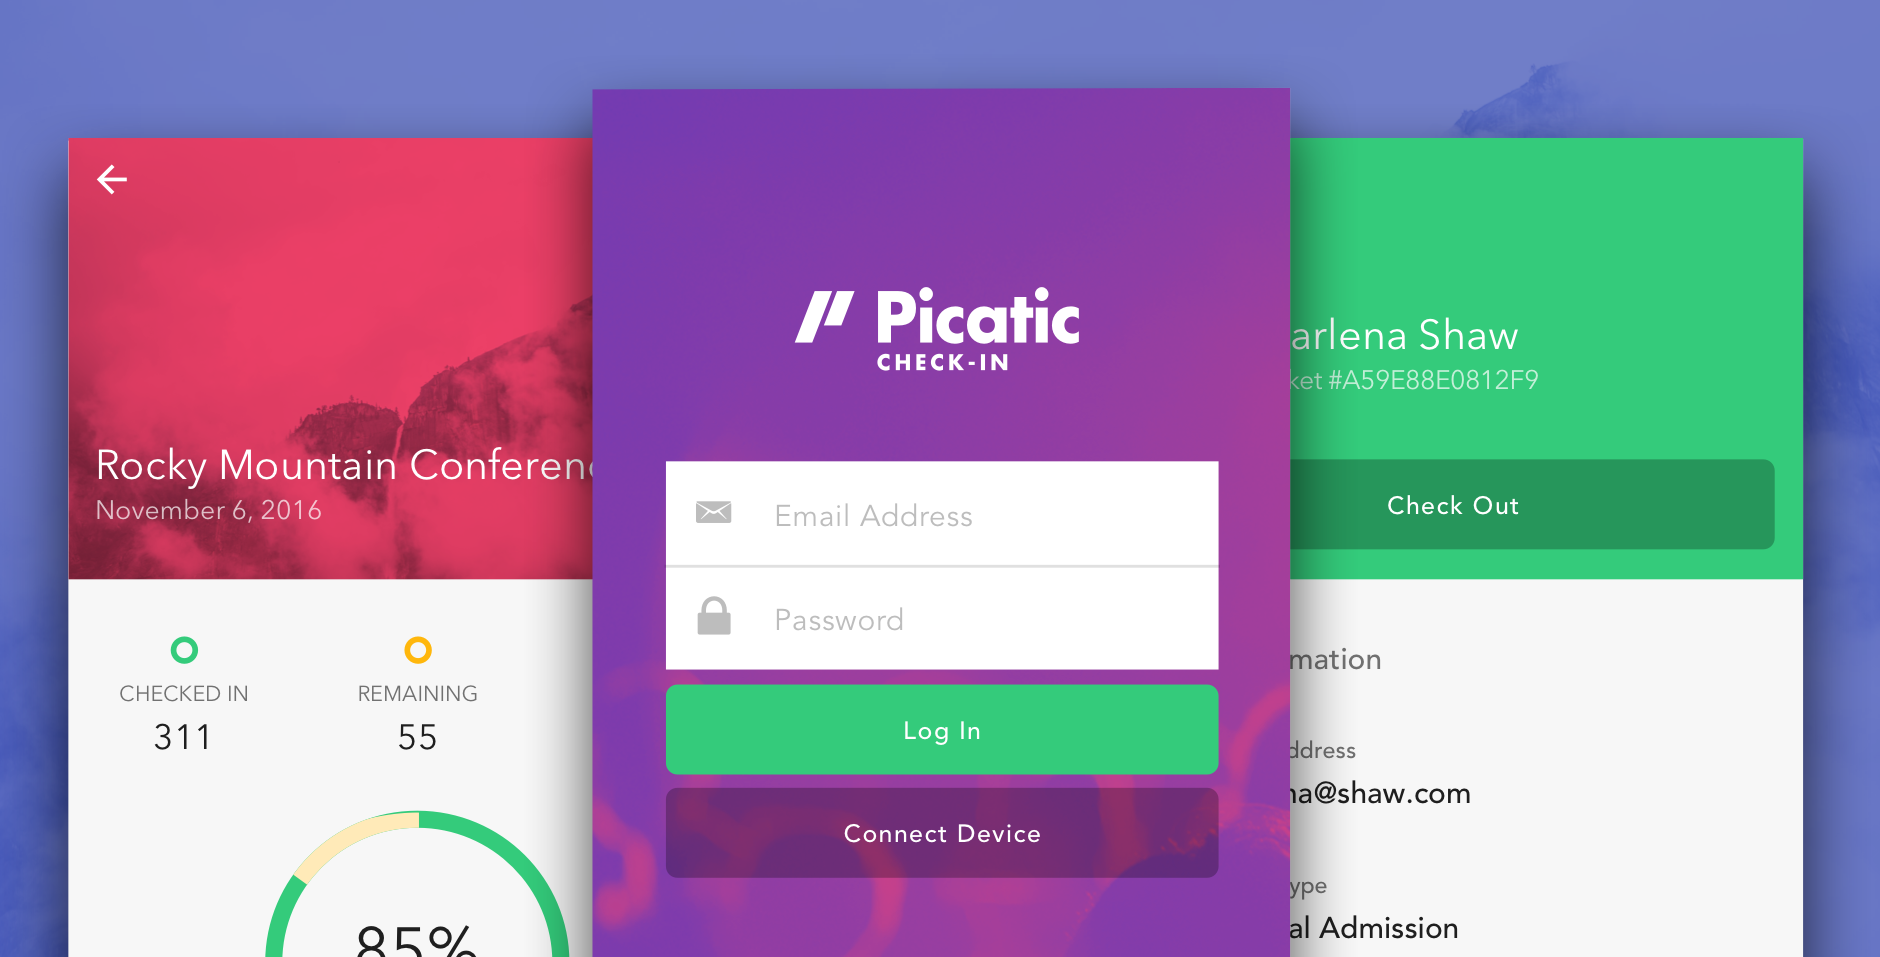 Picatic Check-In for iOS and Android. Scan tickets and check-in your guests at the door.